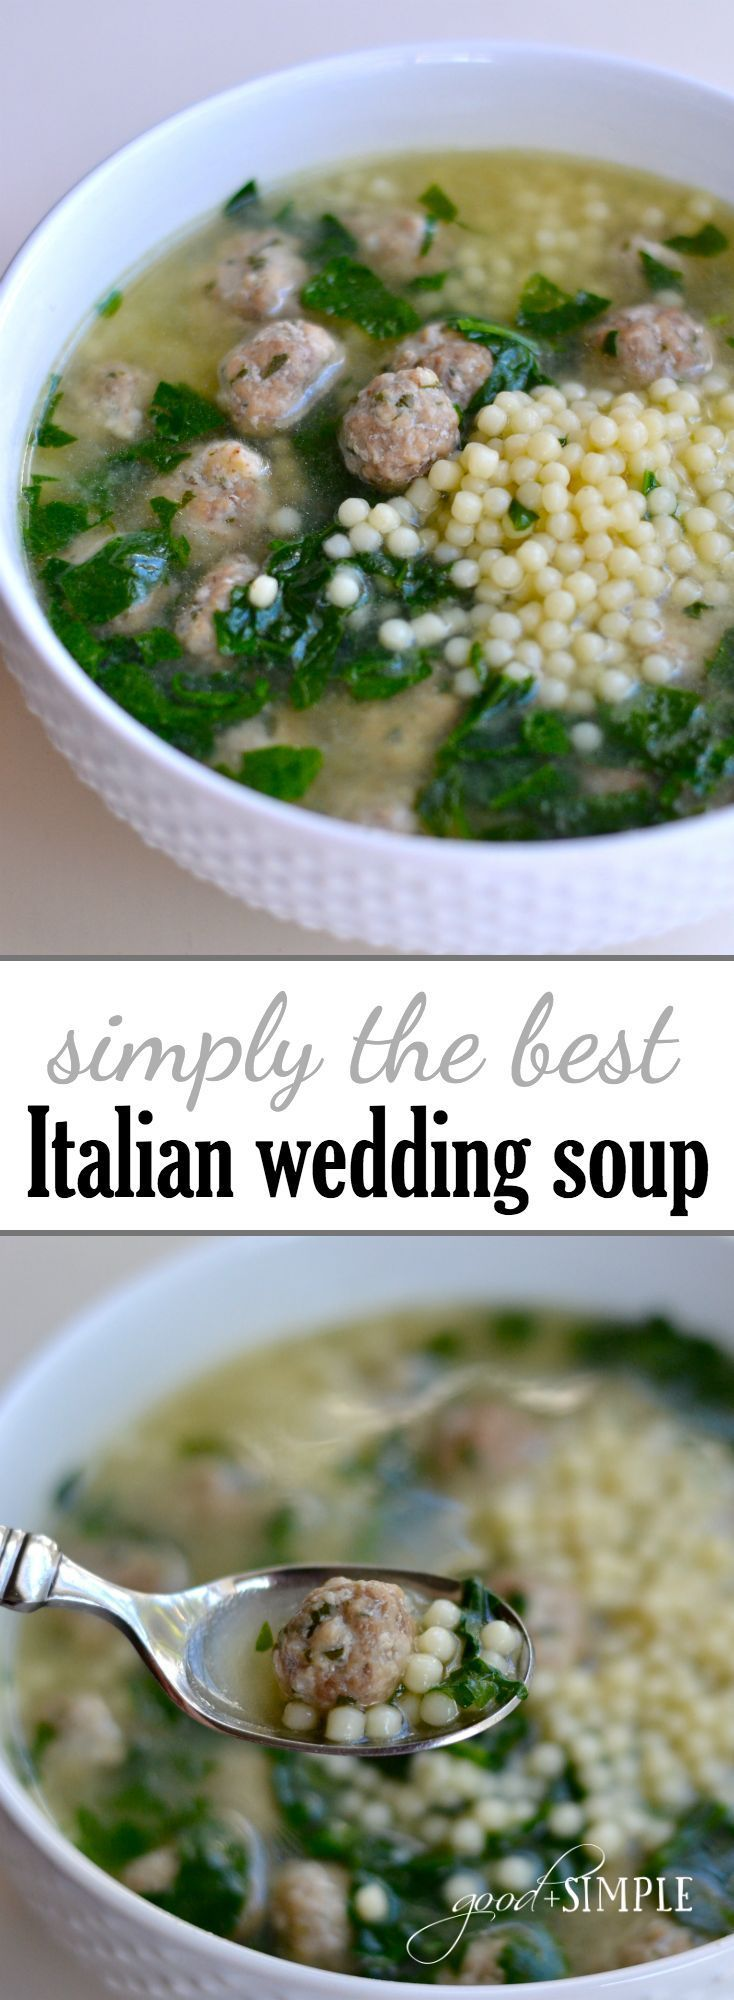 I combined elements from several different Italian Wedding Soup recipes to create our all-time favorite version! As a bonus, it can be made dairy free.